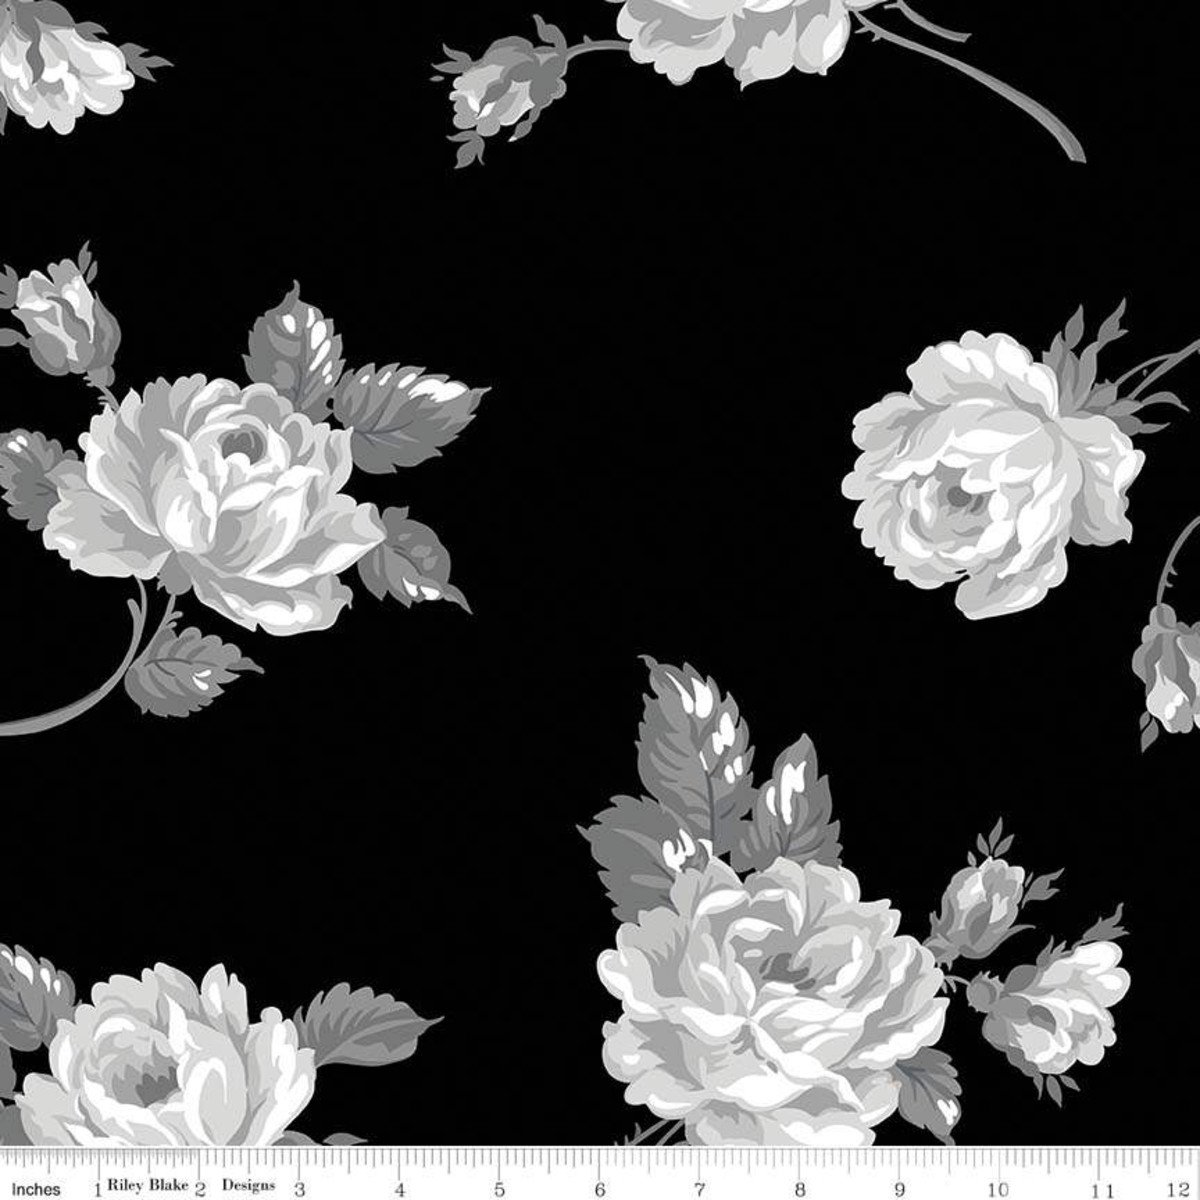 107/108 Serenity Floral Wide Quilt Backing by Gerri Robinson of Planted Seed Designs for Riley Blake Designs - Black